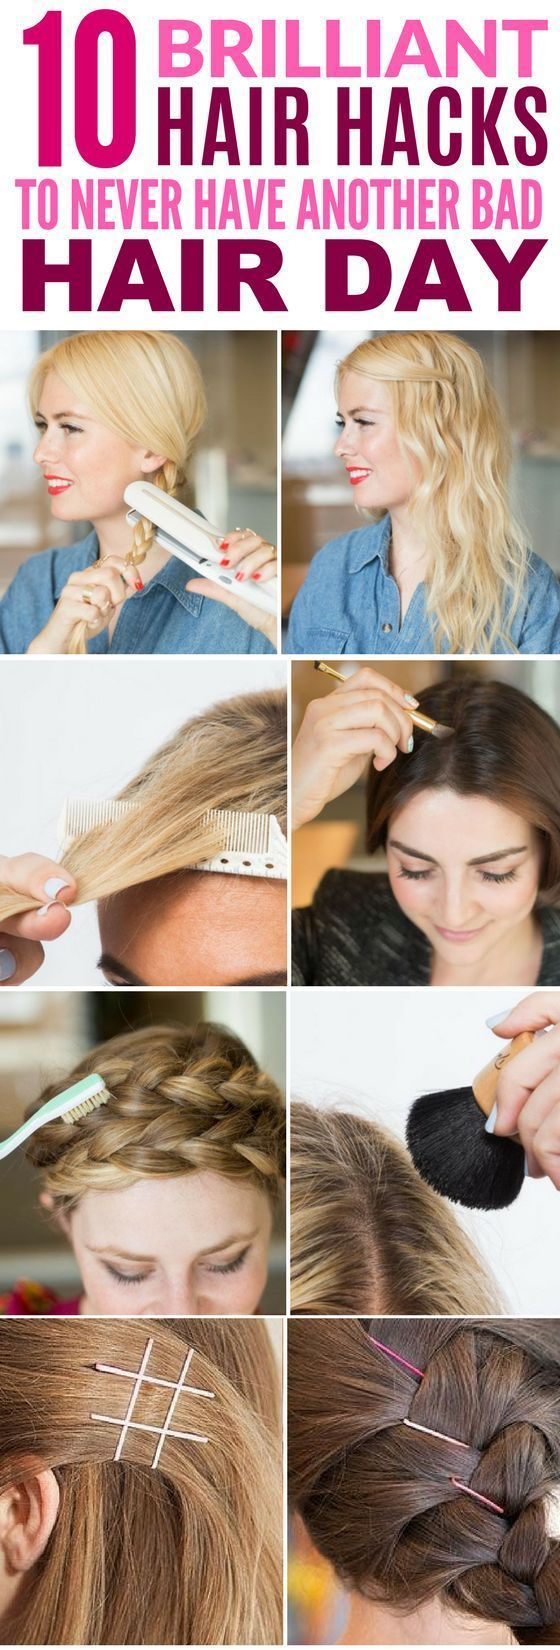 These 10 Hair Hacks Are Seriously The Answer To all My Hair Problems! If you've got curly hair, there is a little something in here for you!